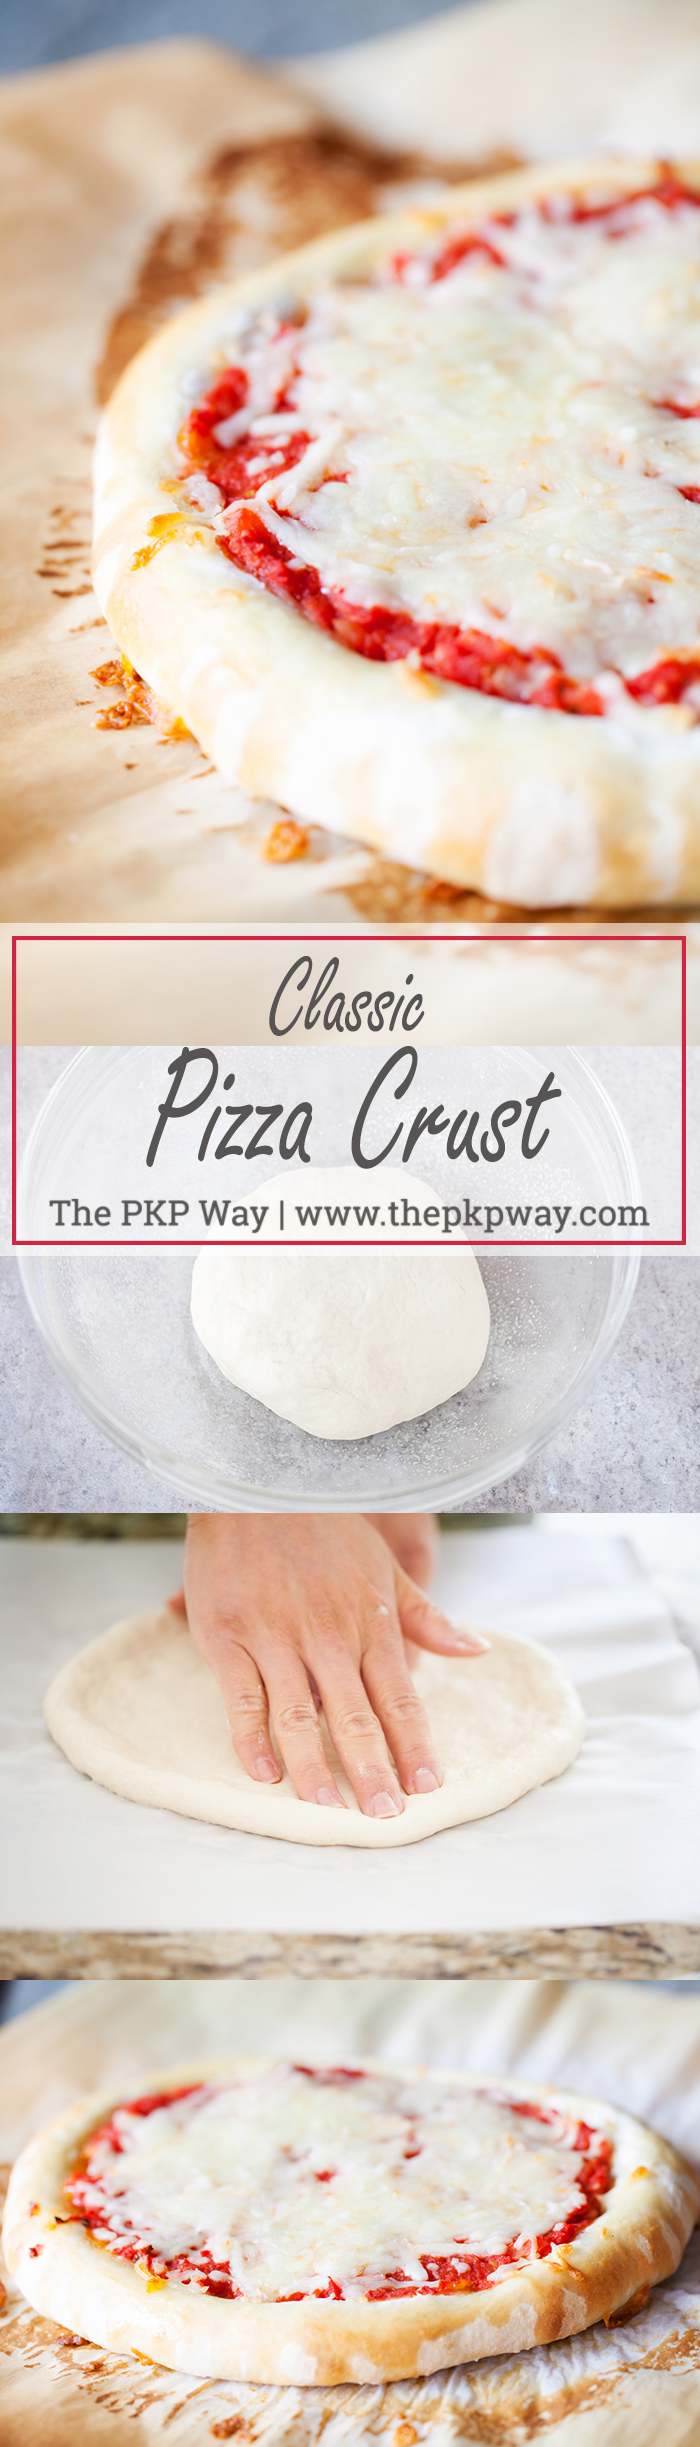 Versatile and easy to handle, this dough produces the perfect Classic Pizza Crust that's crispy on the outside and tender on the inside.